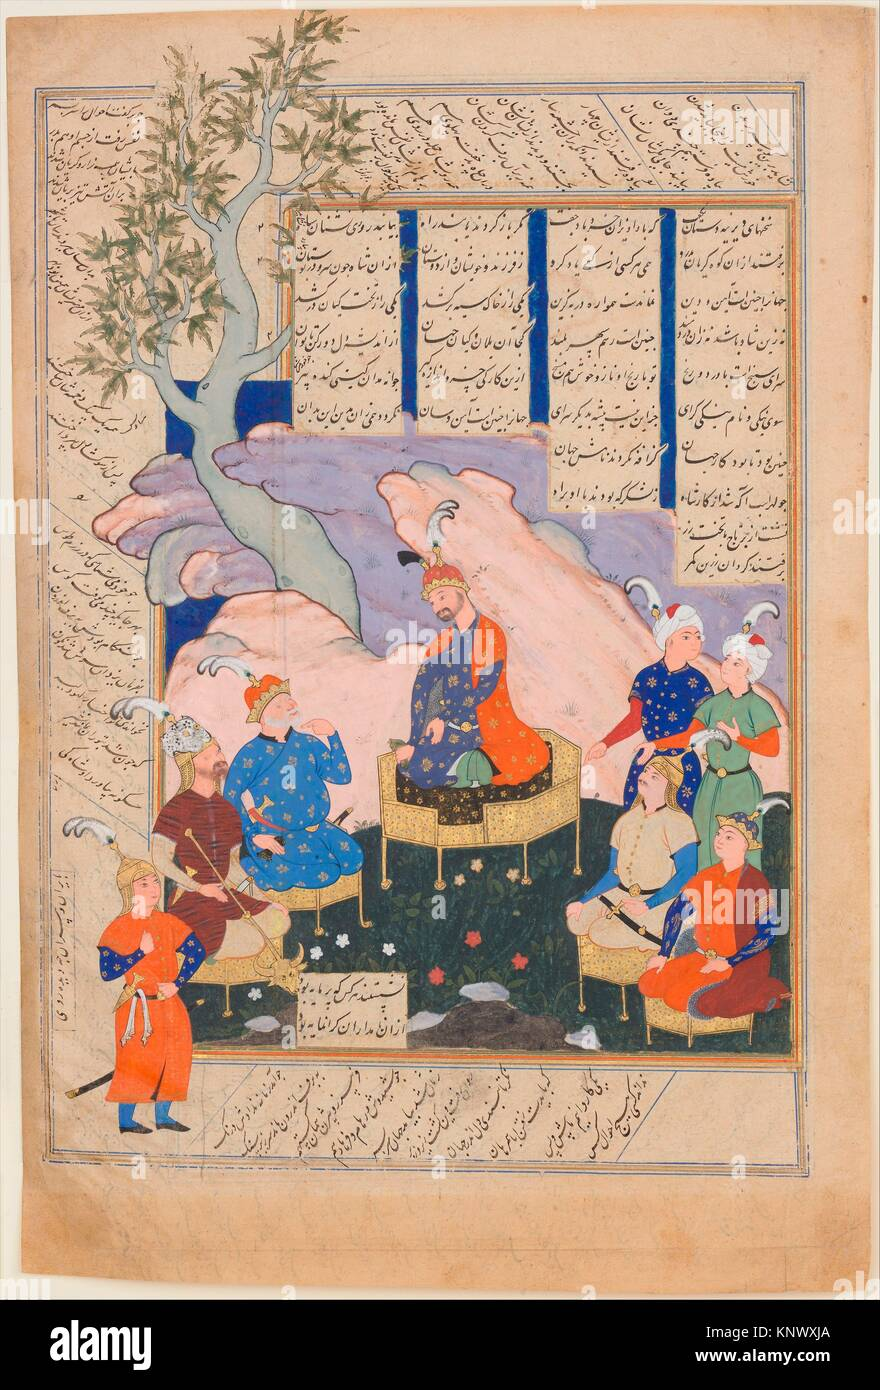 Luhrasp Hears from the Returning Paladins of the Vanishing Kai Khusrau, Folio from a Shahnama (Book of Kings) of - Stock Image